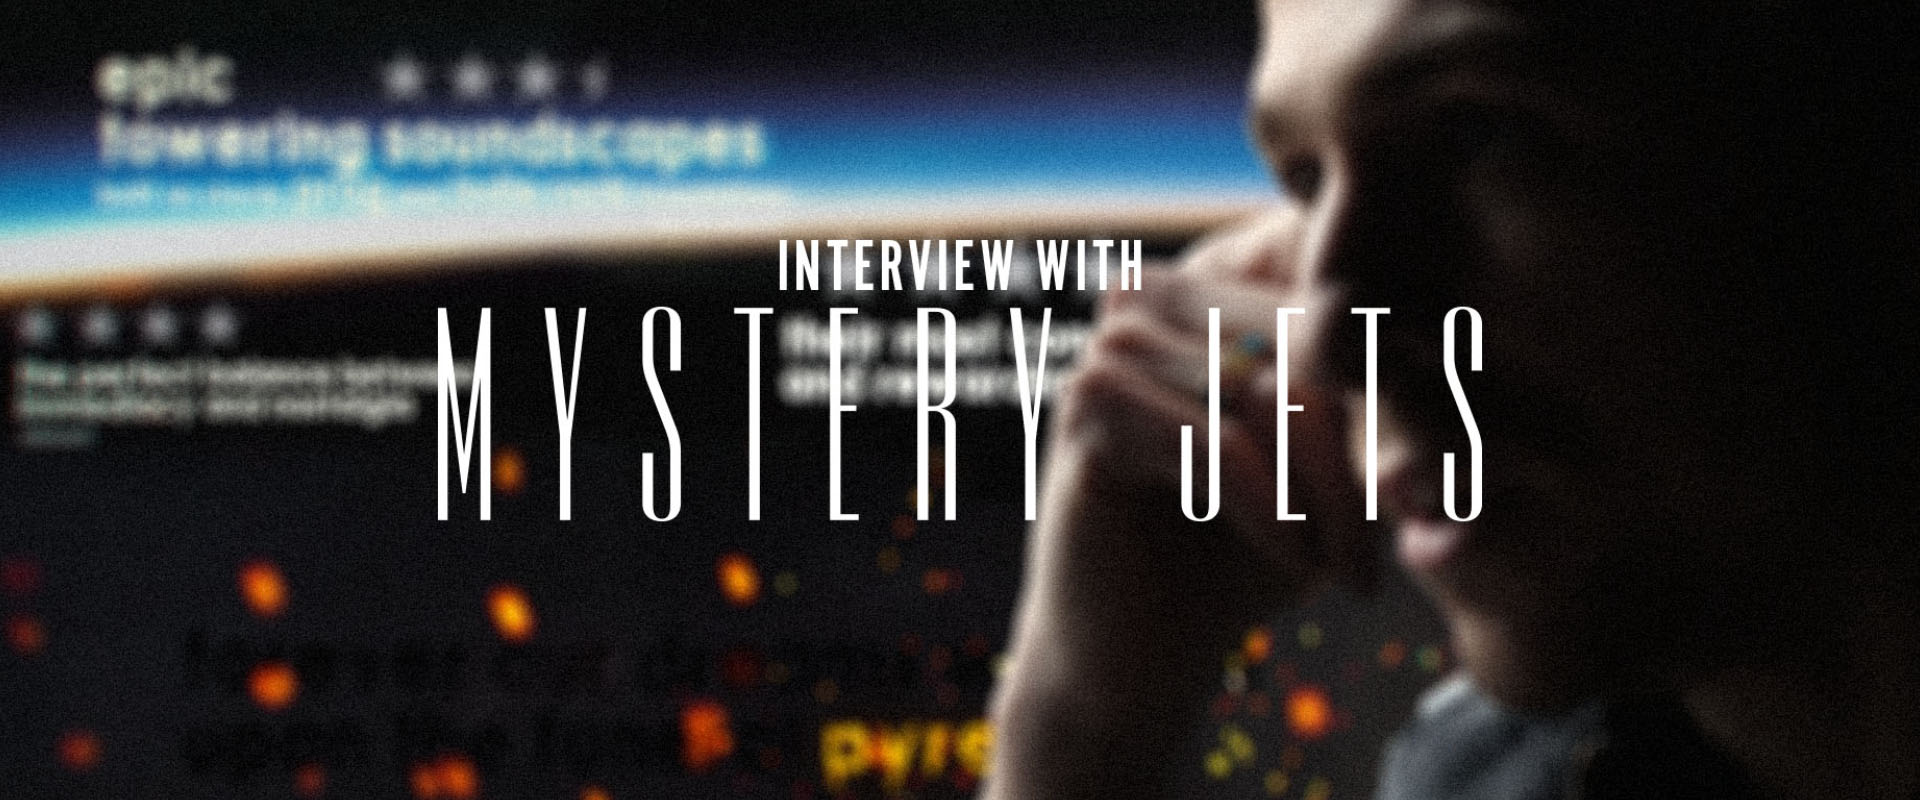 mystery jets interview curve of the earth thumbnail